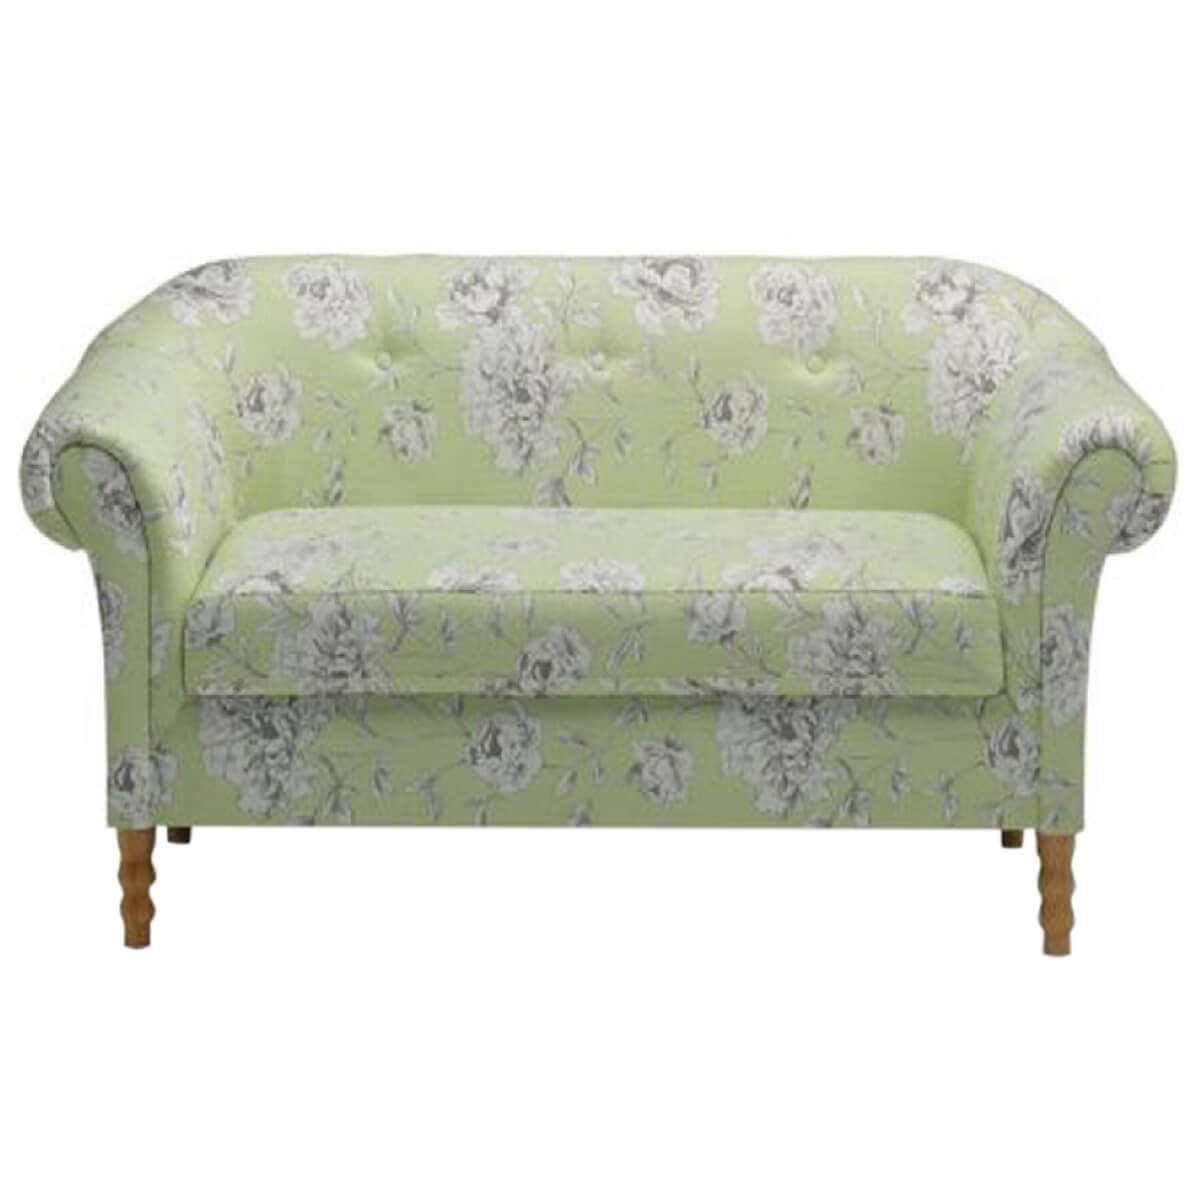 dfs sofa sofas know large chiltern billion and loveseats estates to vintage loveseat floral